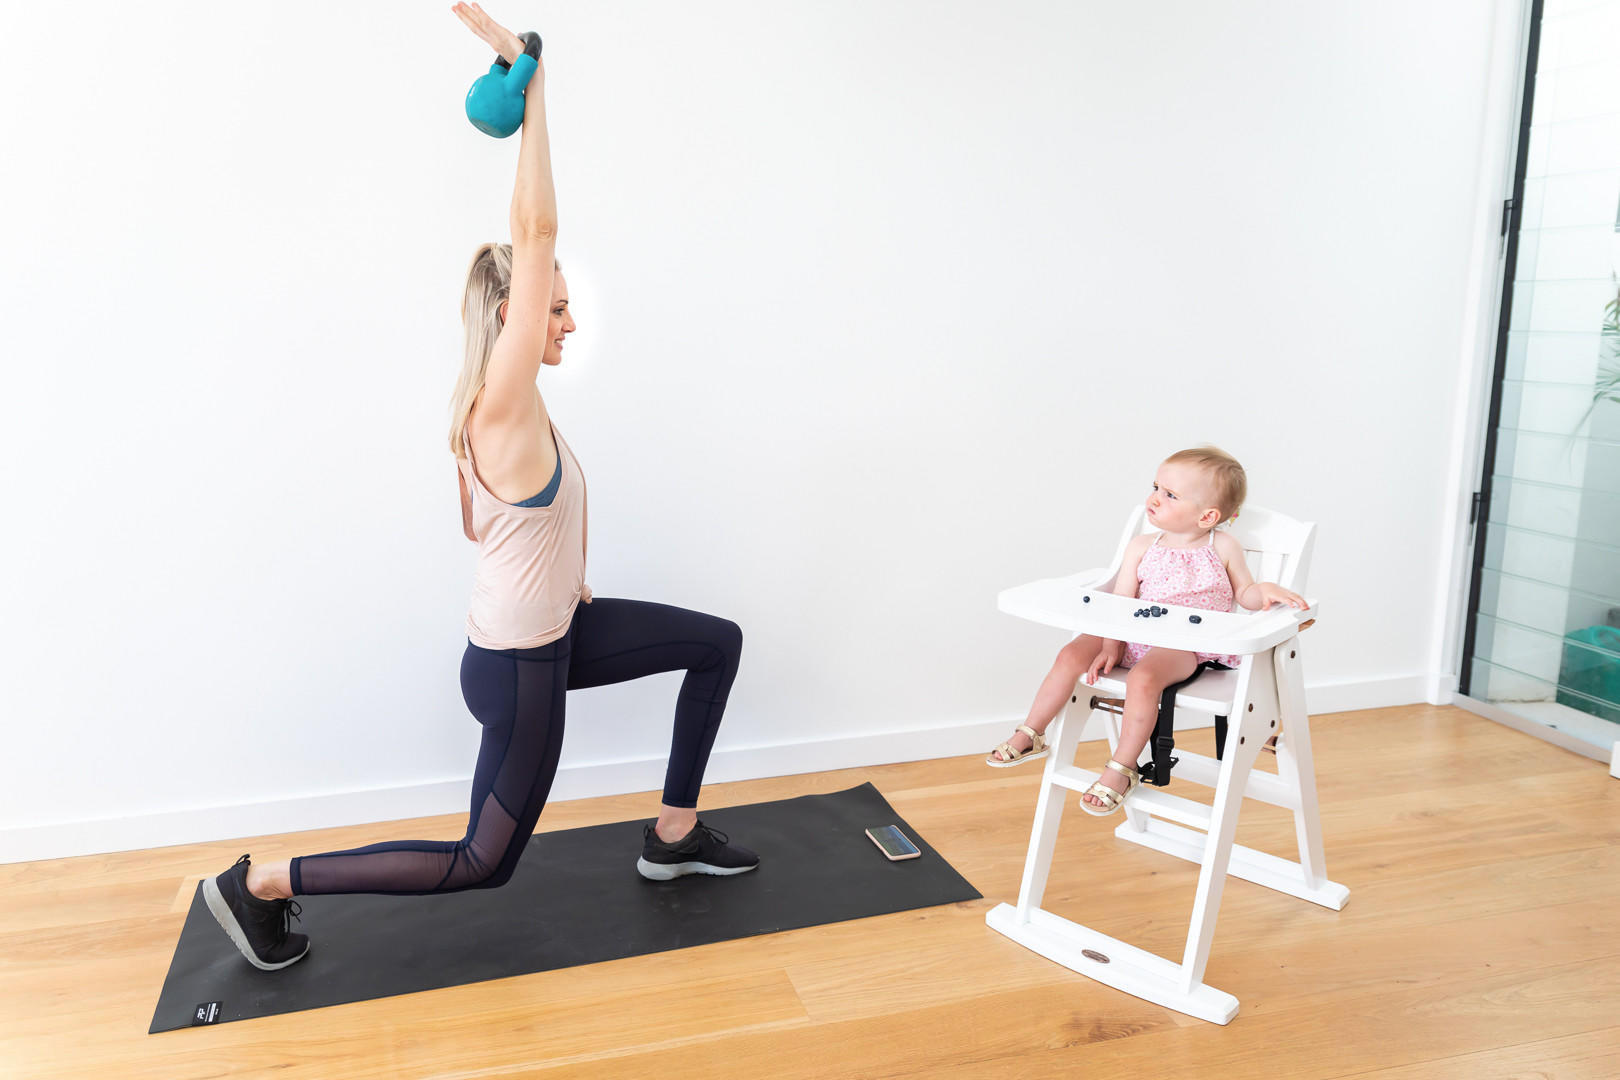 exercise for postpartum, at home postnatal workouts, exercise postnatal, postpartum workouts, postnatal exercise, safe exercise after birth  physio exercise for postpartum